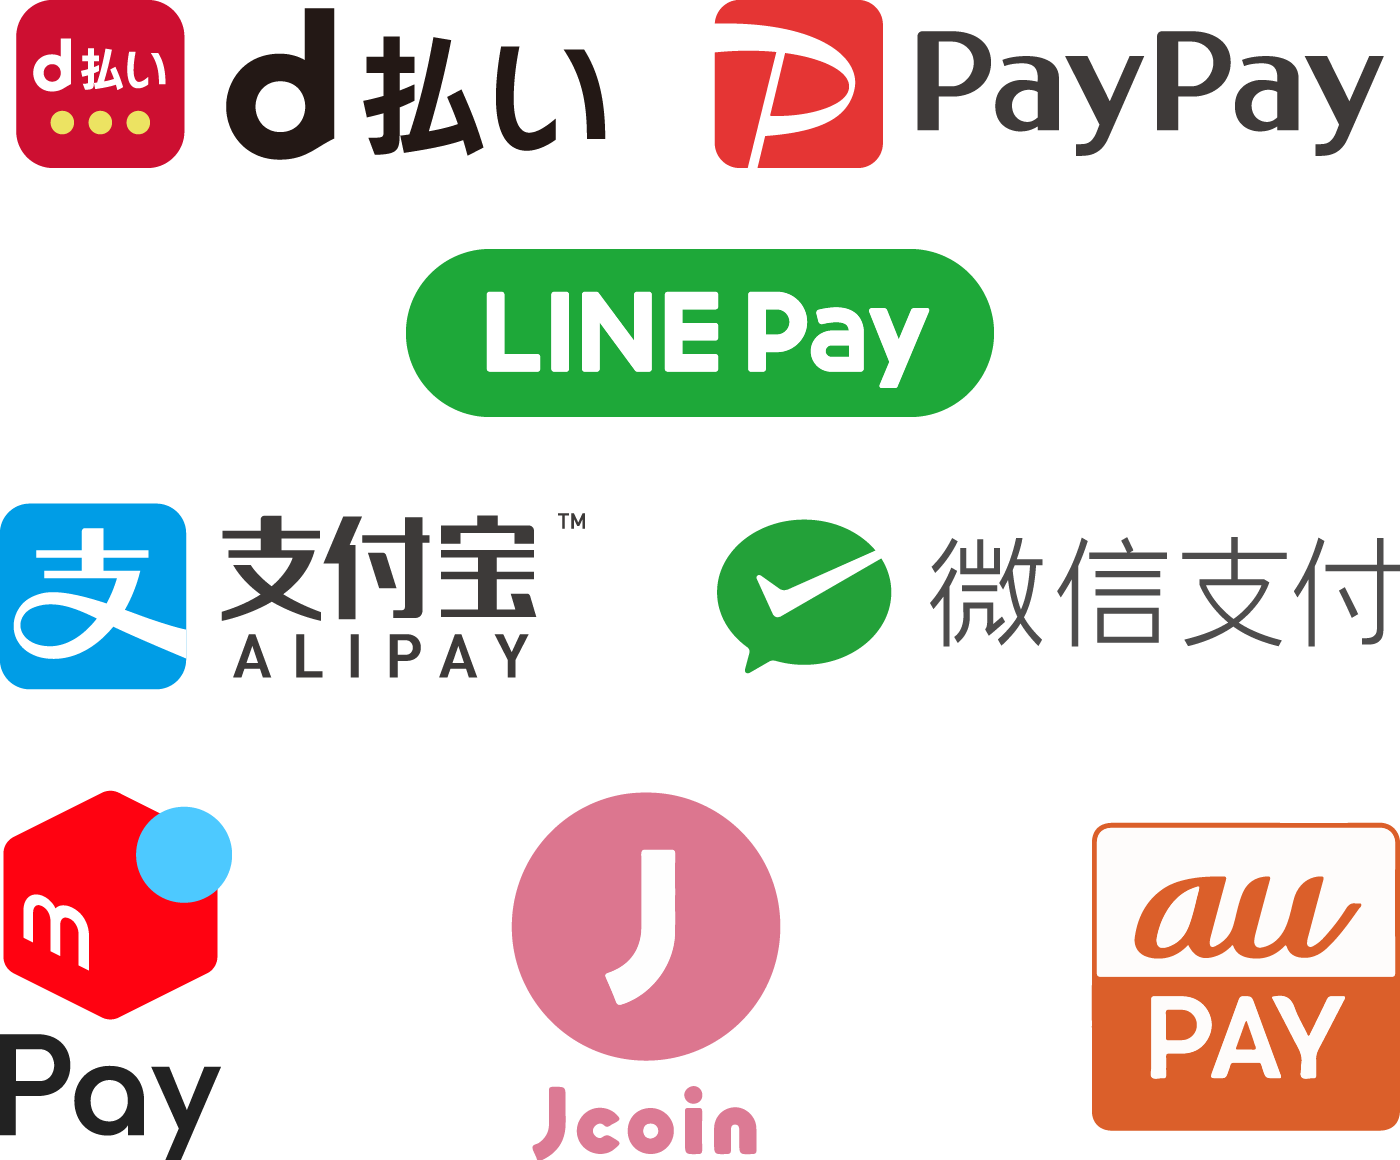 Alipay Connect,WeChat Pay,銀聯QR,d払い,PayPay,LINE Pay,au PAY,J-Coin Pay,メルペイ